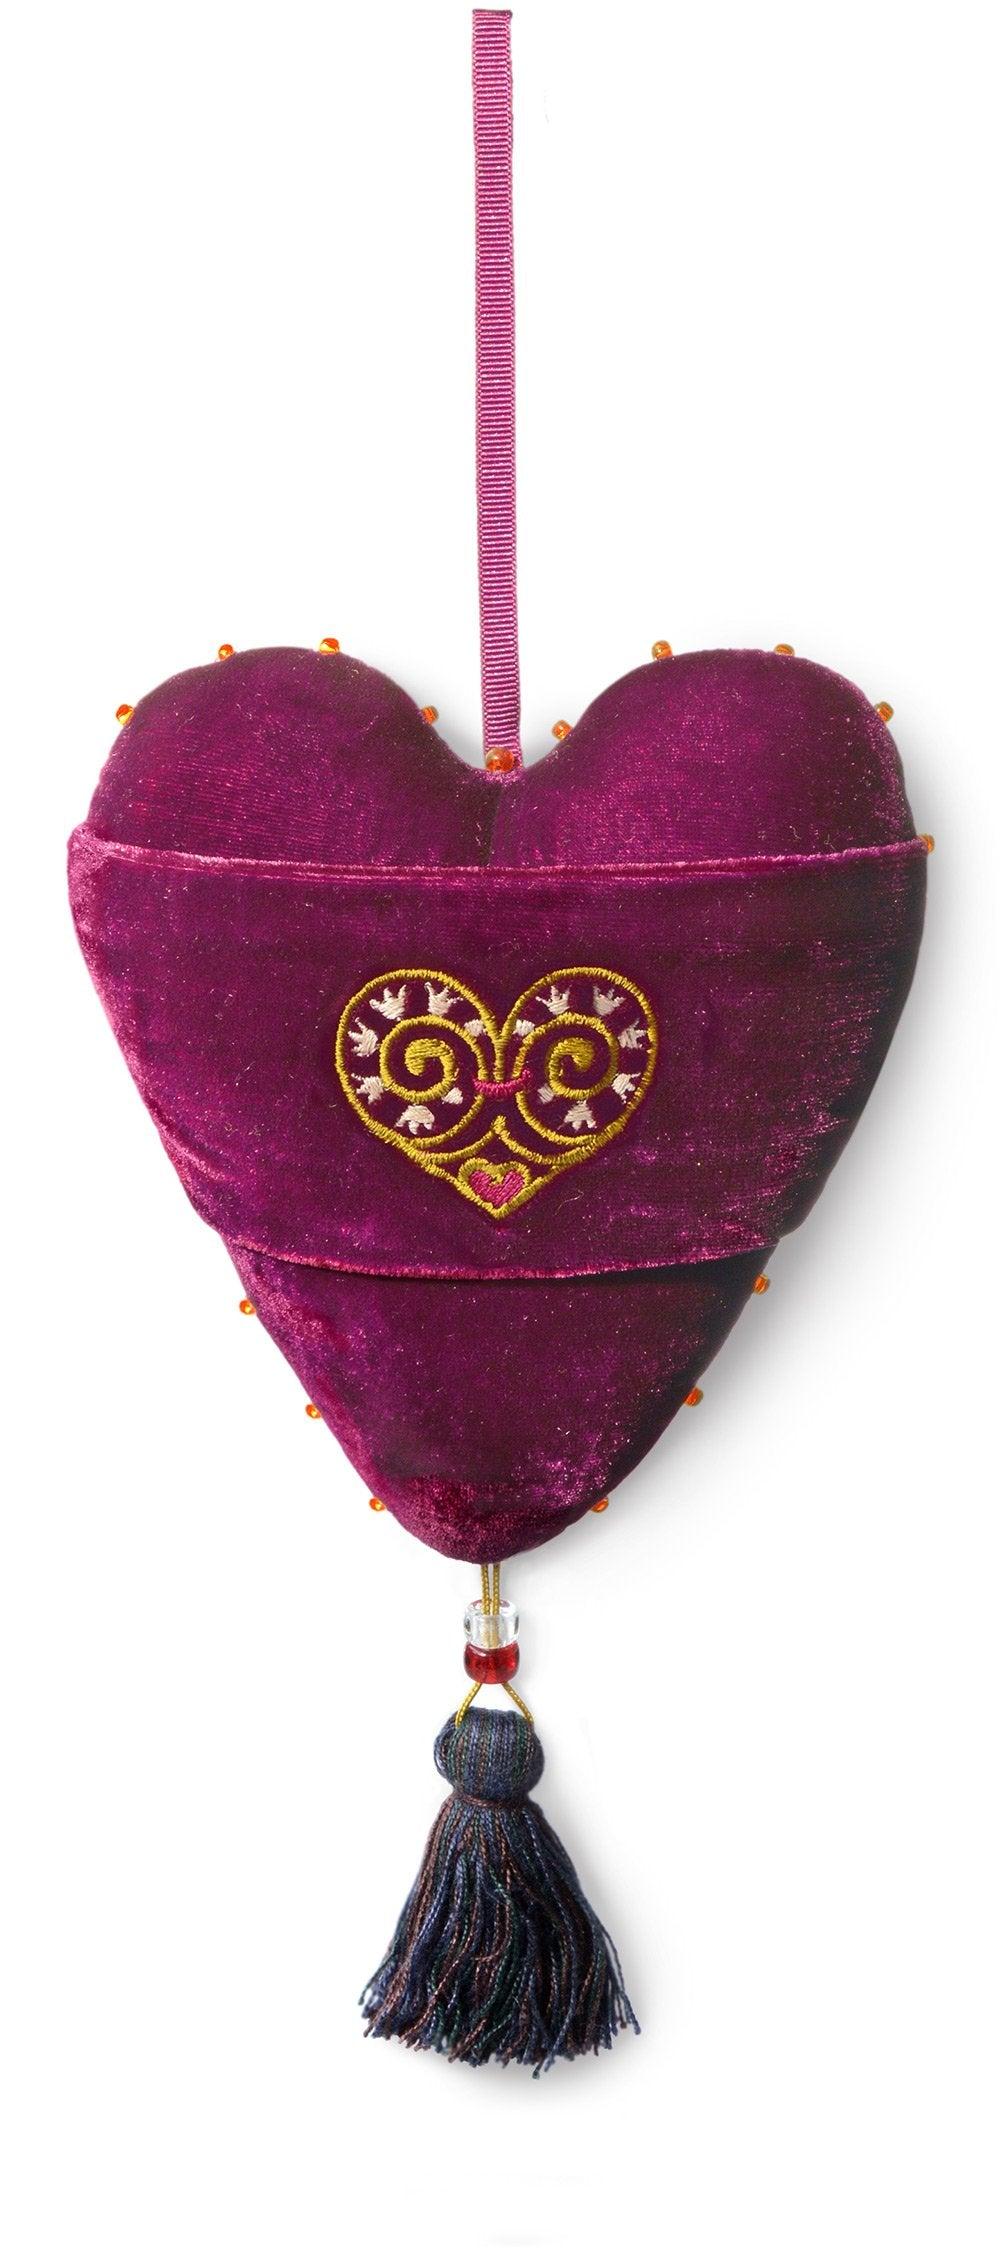 Love charm, baba studio, embroidered heart, embroidery, decoration, silk velvet, love is enough